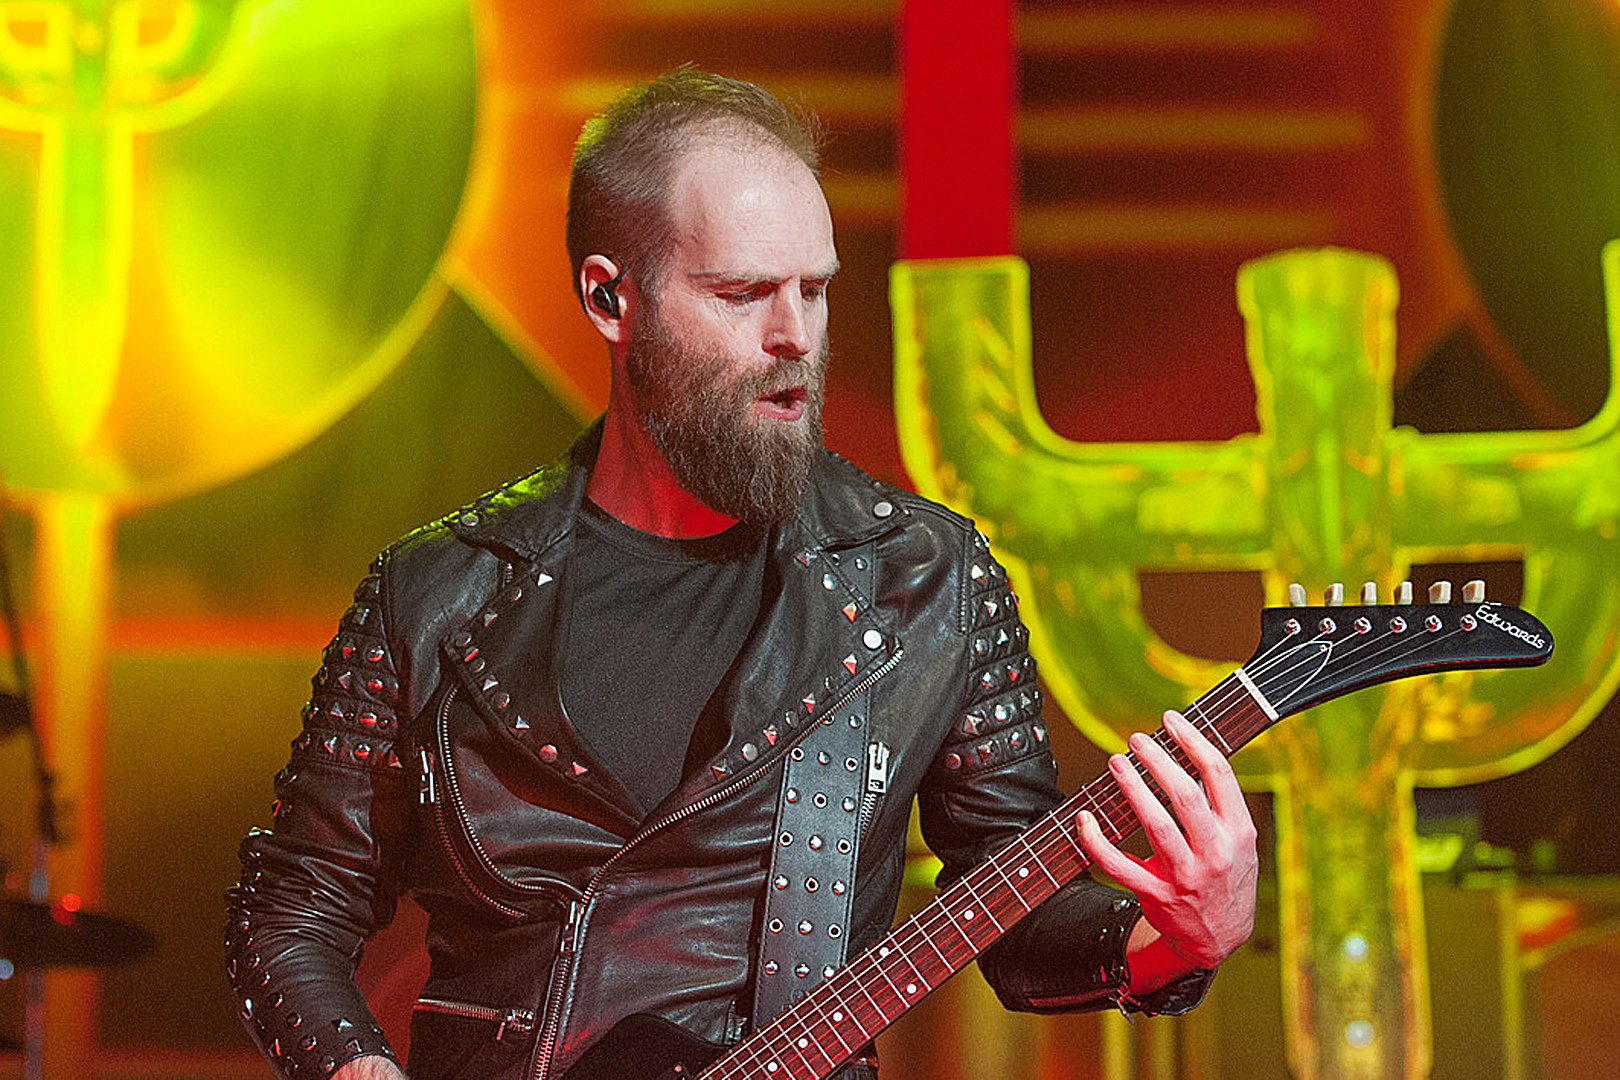 Judas Priest Guitarist Andy Sneap Receives Honorary Masters Degree From Derby University